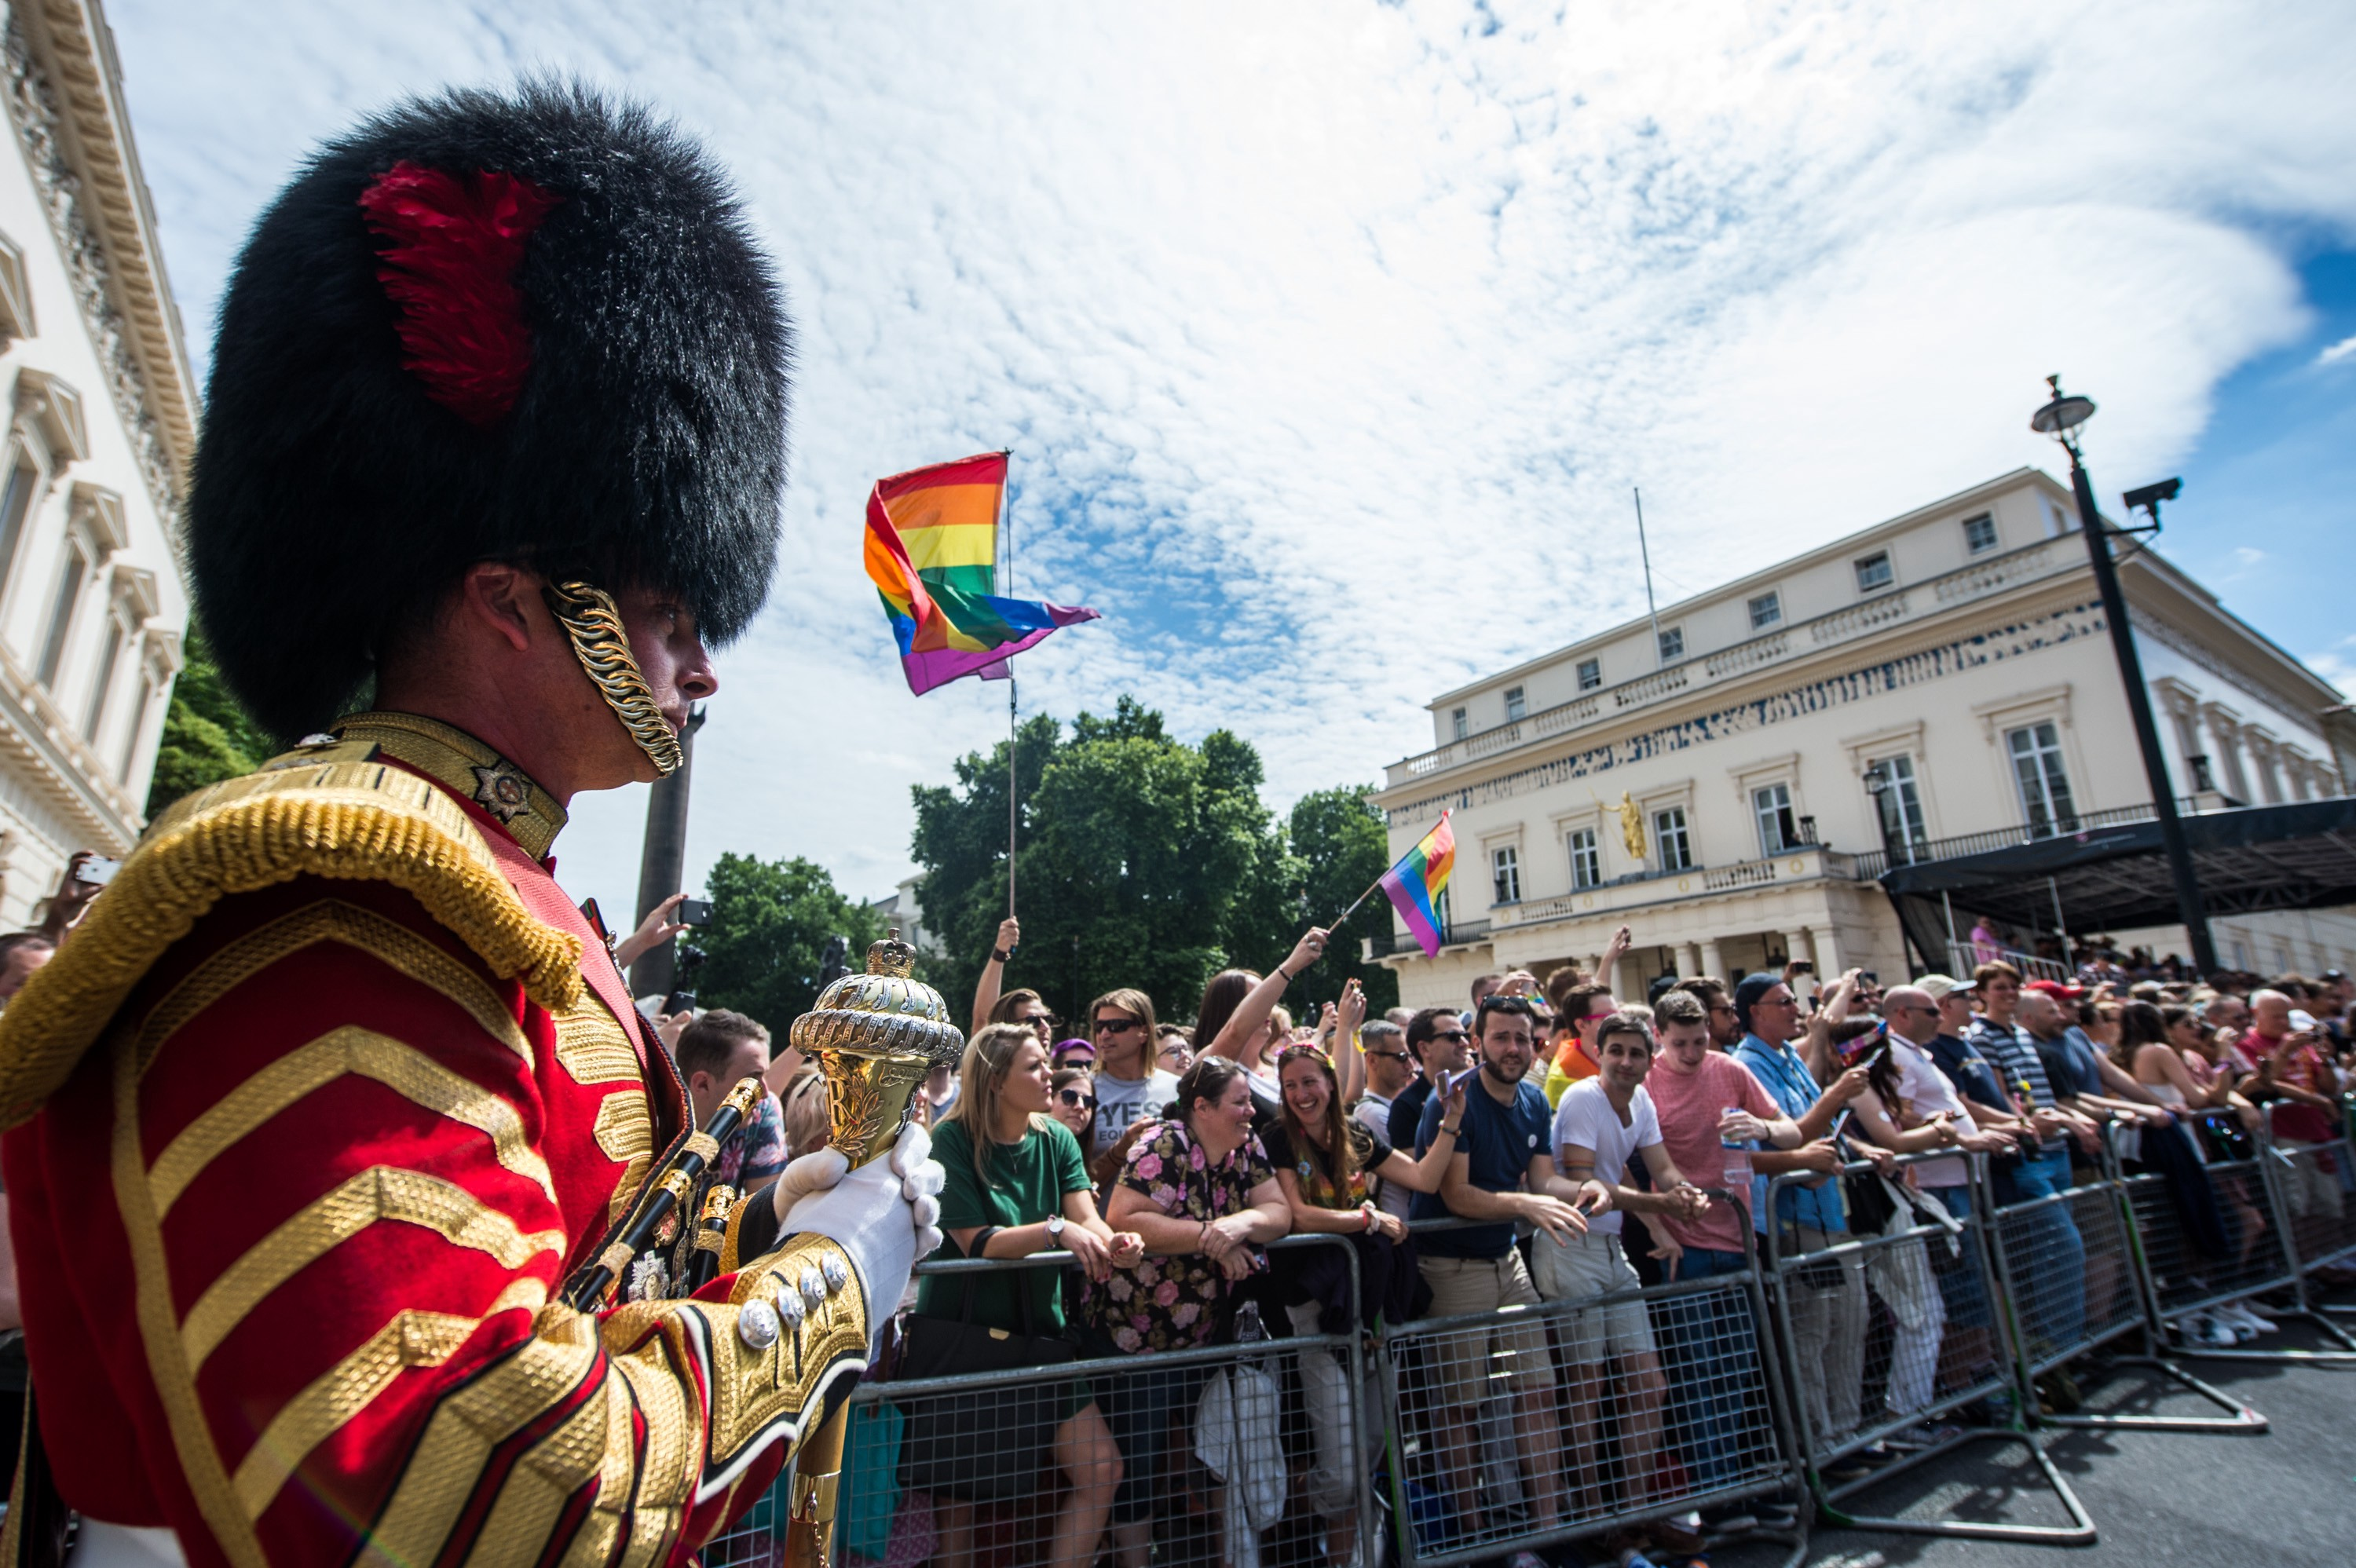 More than 200 Armed Forces and civilian Defence personnel, led by the Band of the Welsh Guards, marched in Pride in London 2017